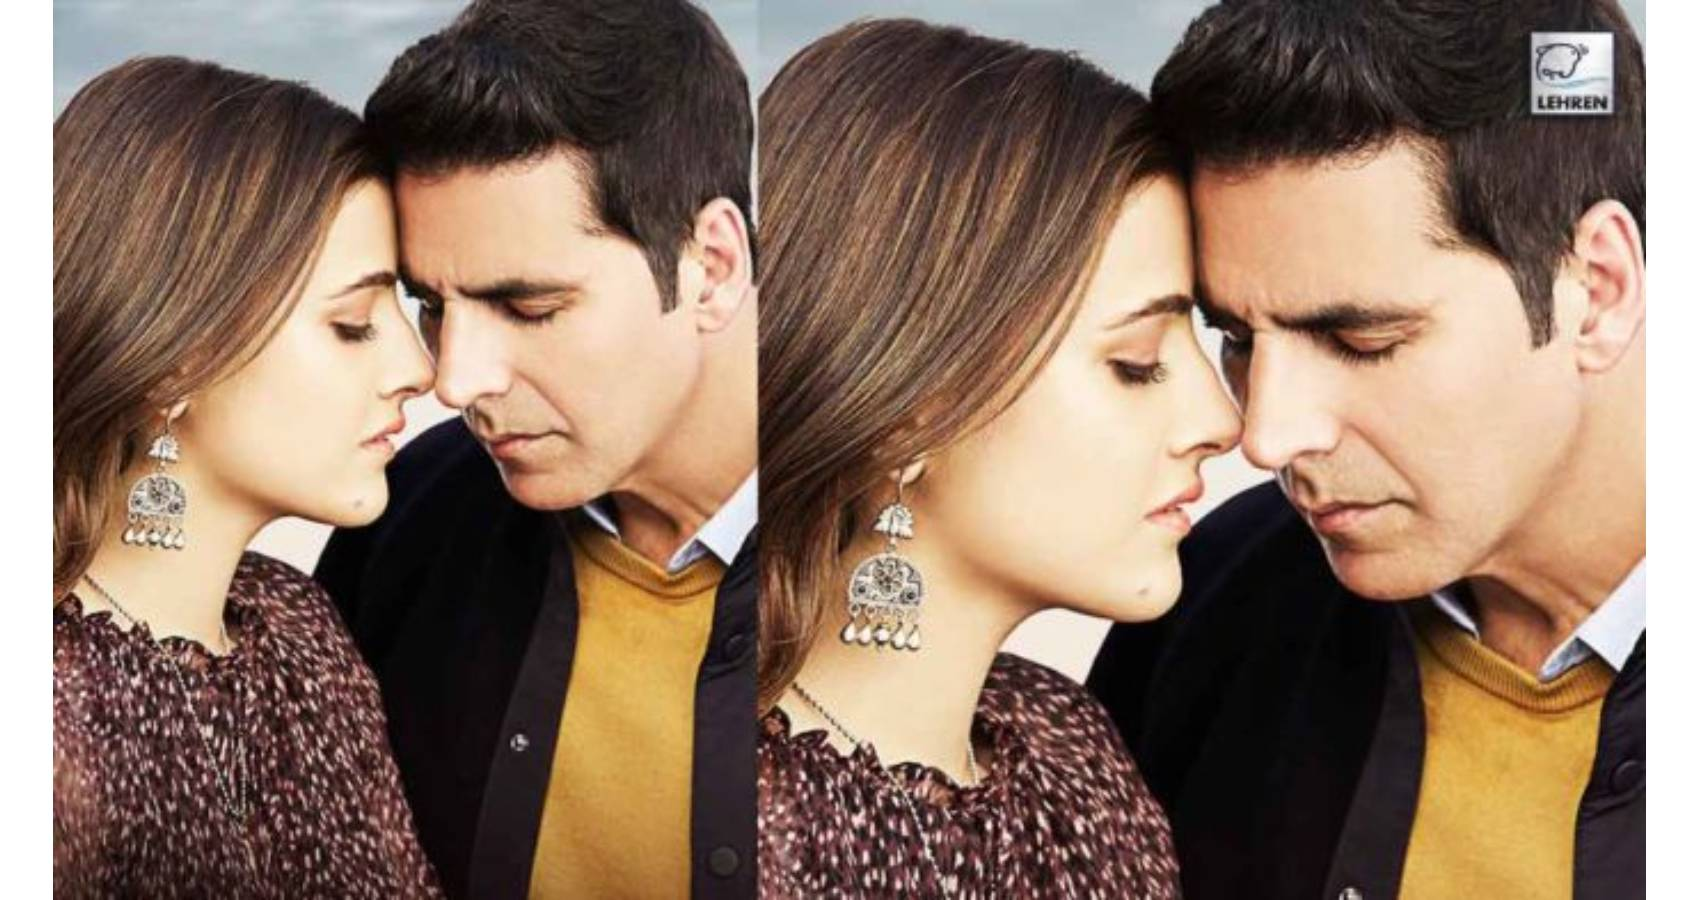 Akshay Kumar's 'Filhaal 2 Mohabbat' Creates History with Over 100M Views in 3 Days